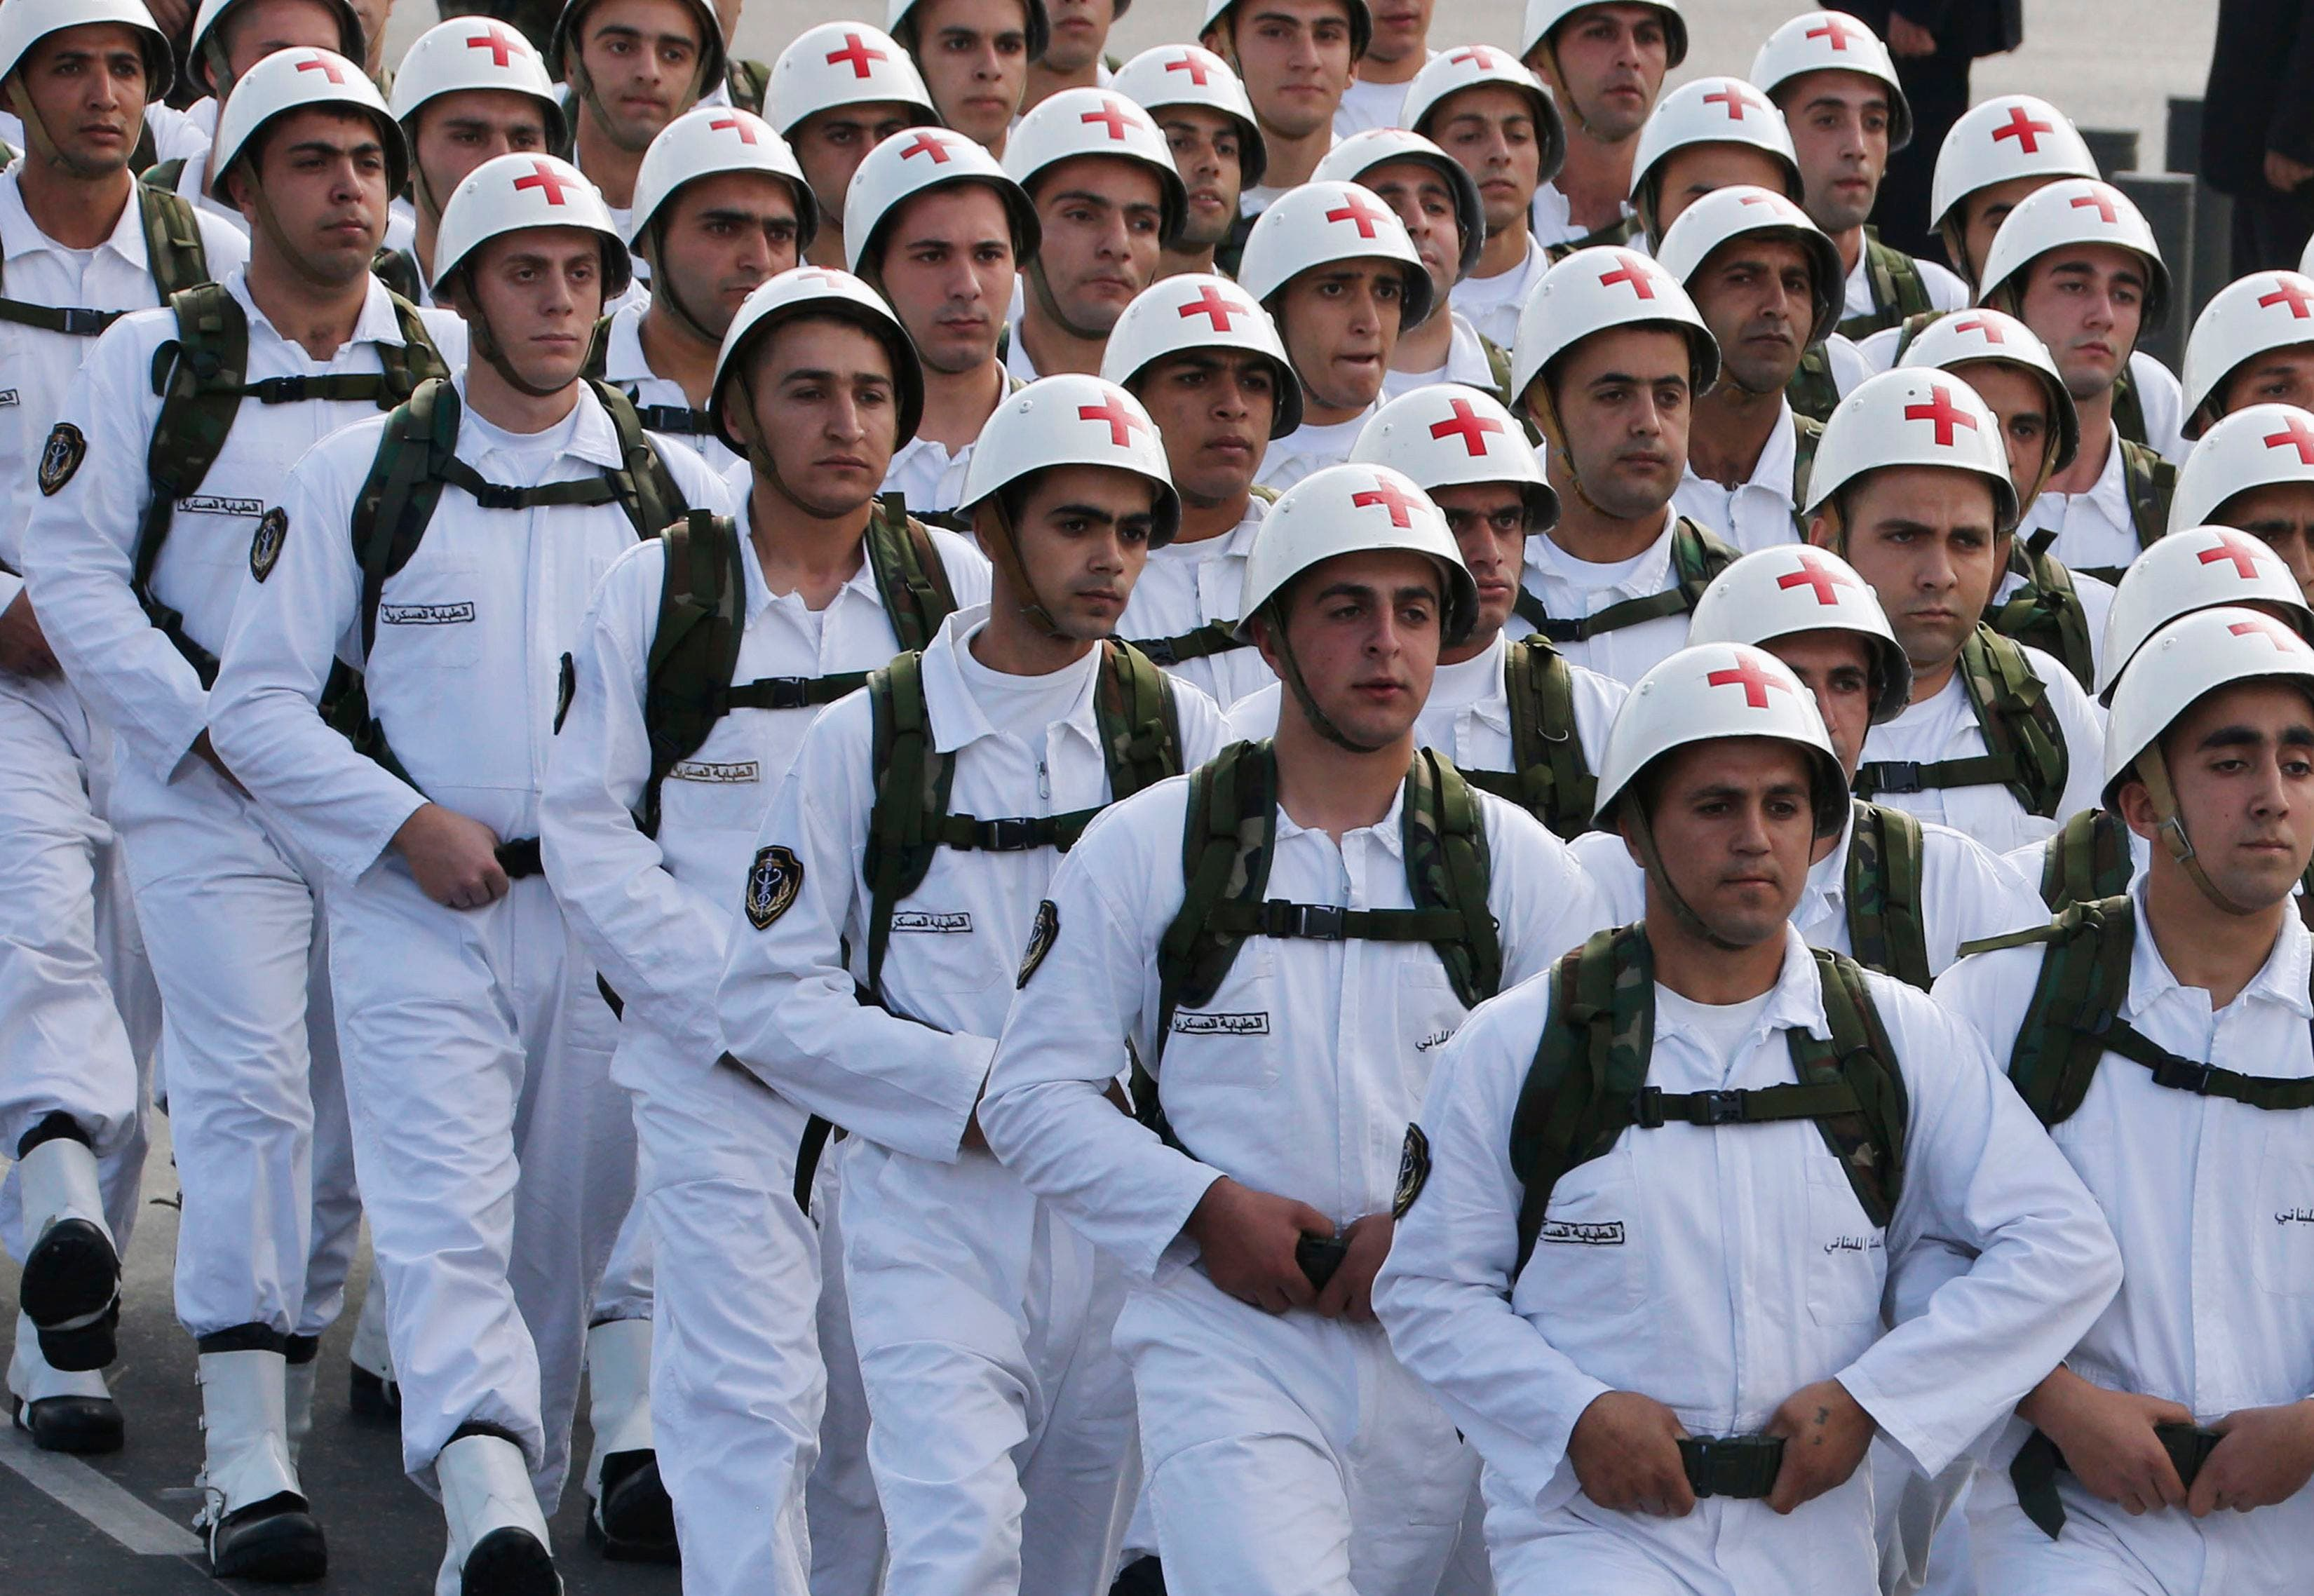 Lebanon marks independence day